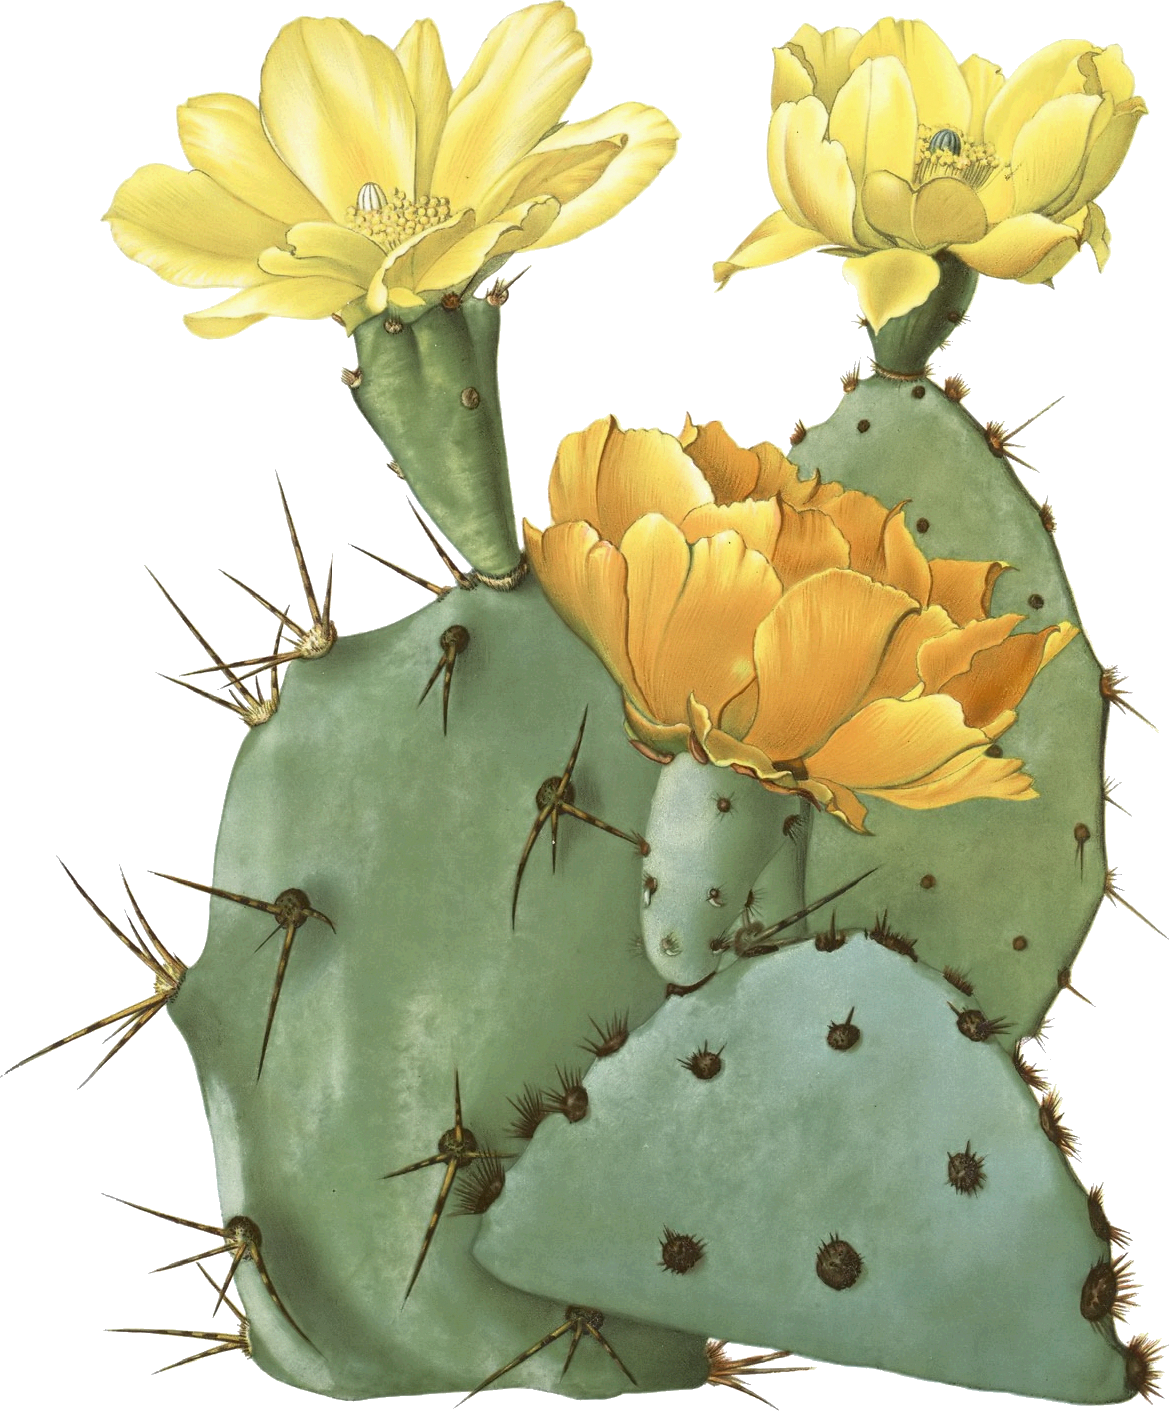 Drawing cactus prickly pear. Opuntia laevis spineless tulip